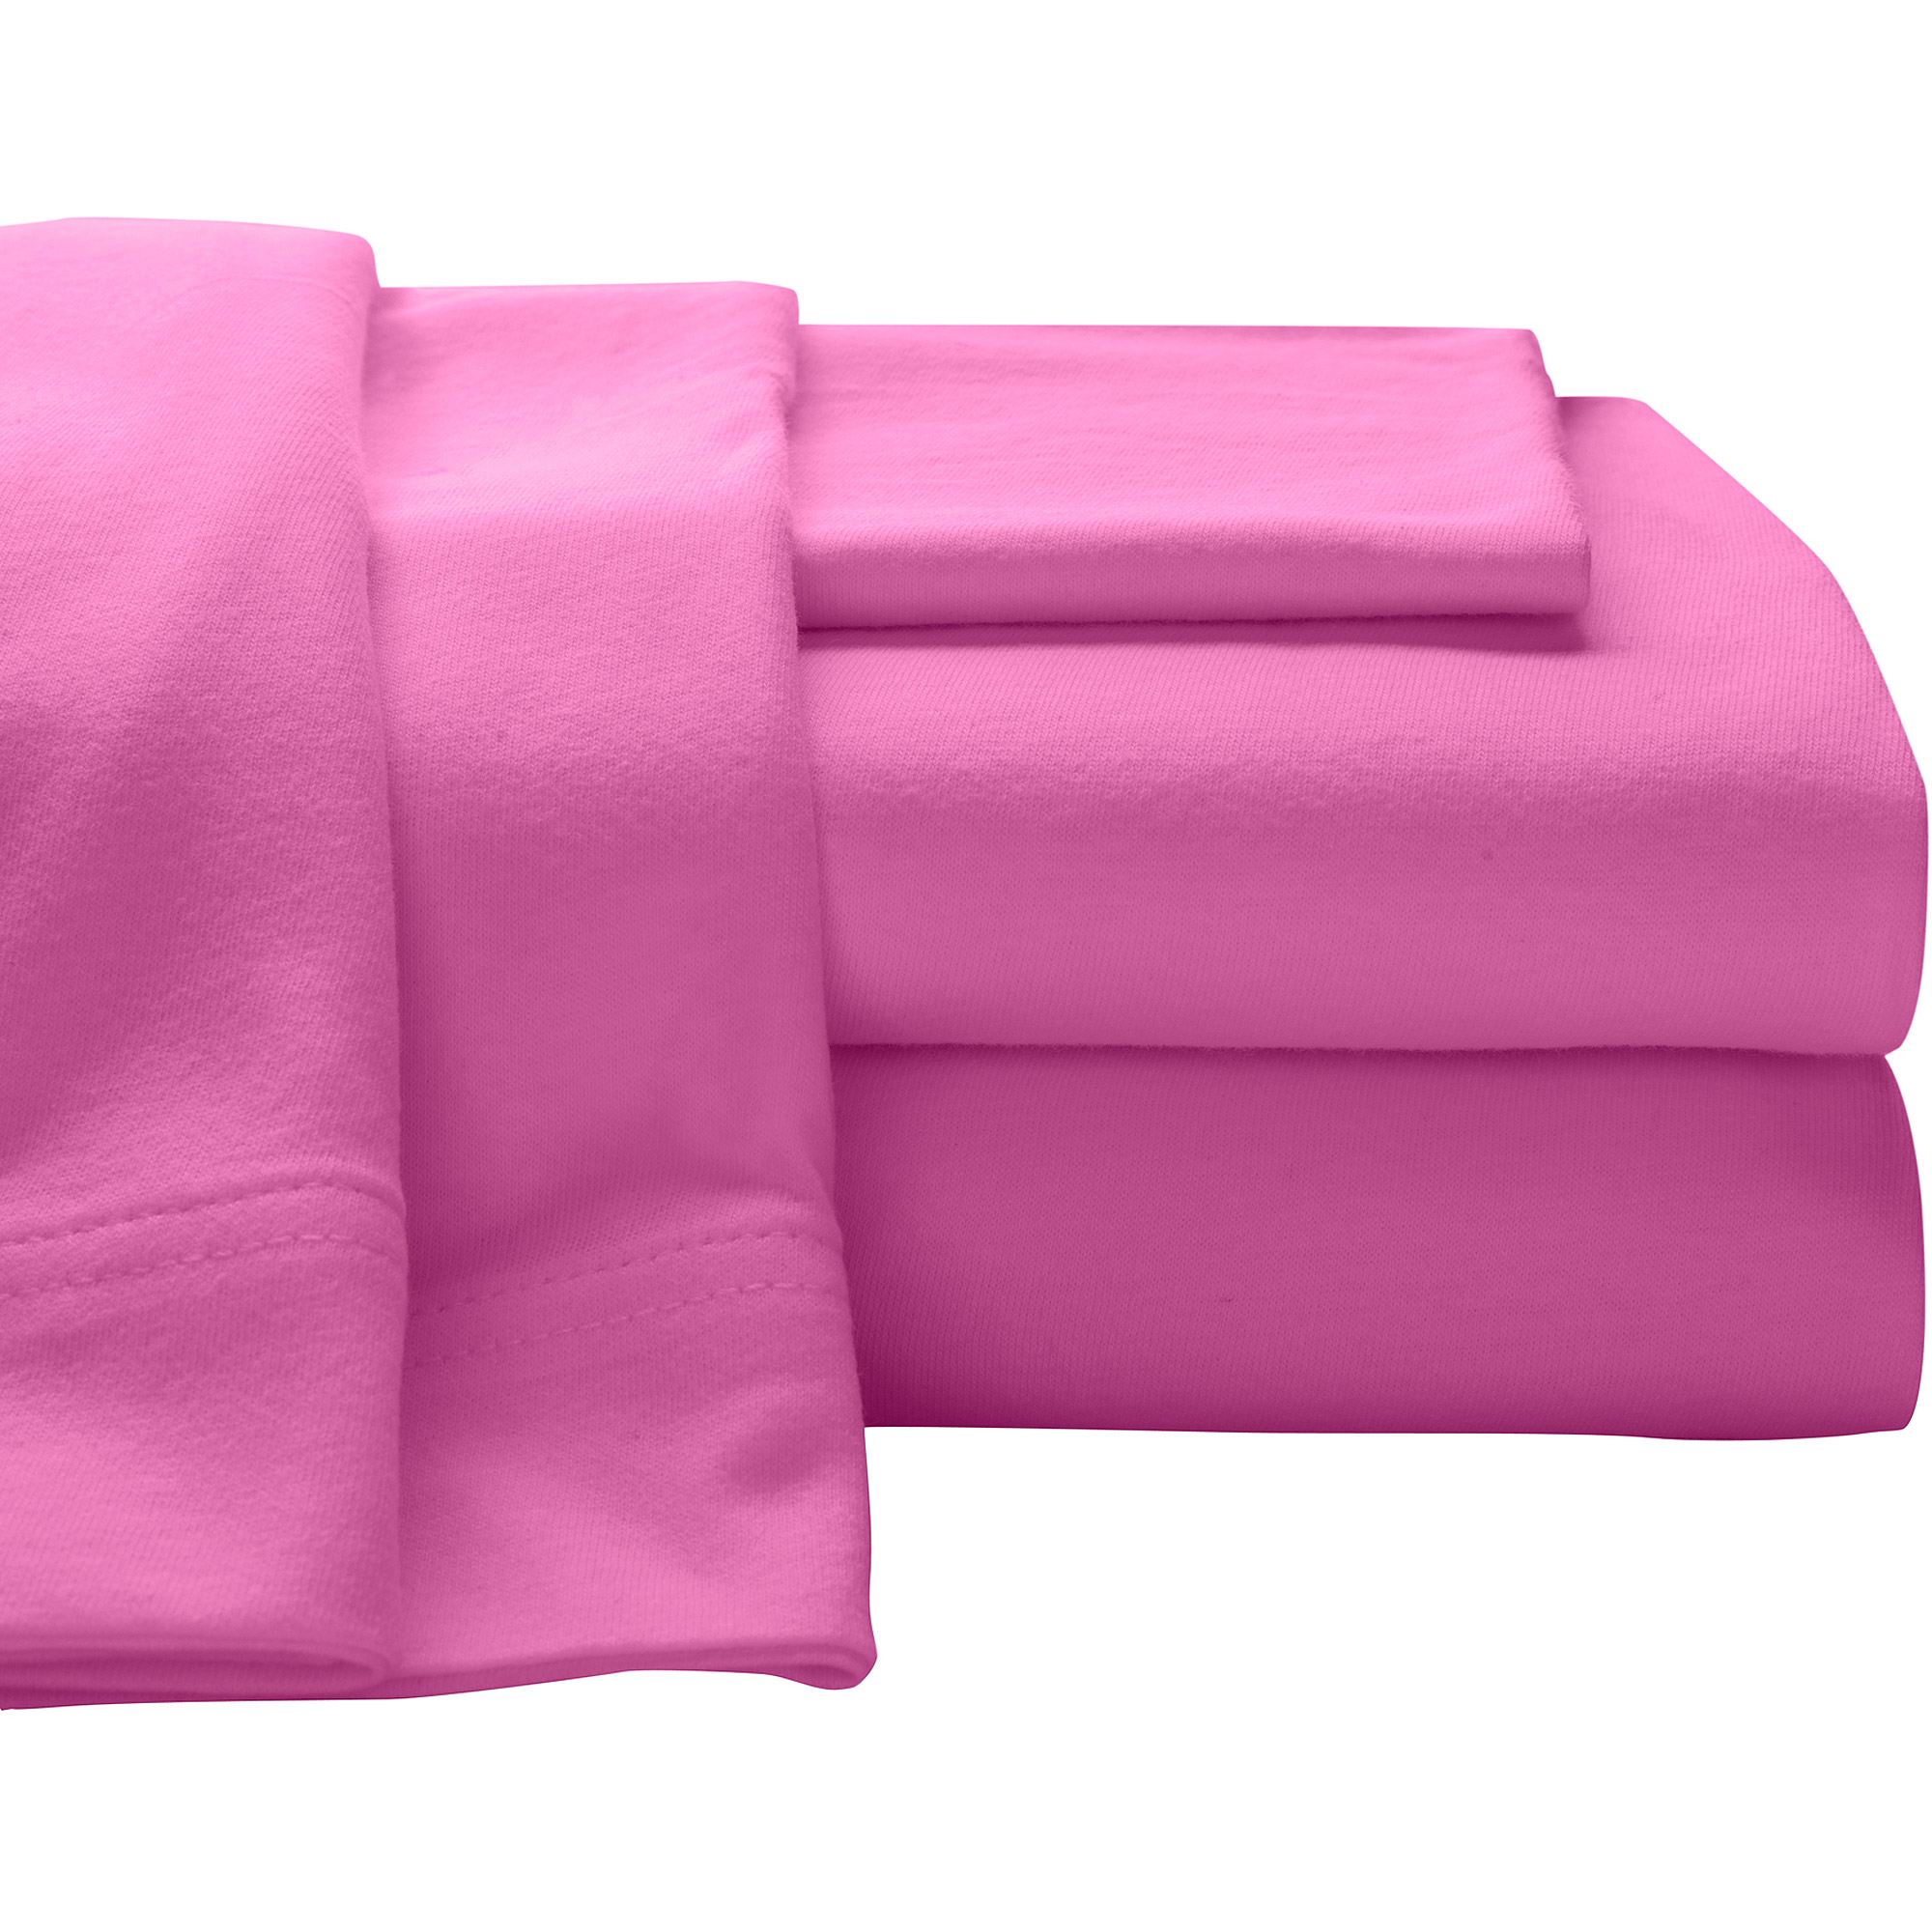 Super Soft 100% Cotton Jersey Sheet Set   Walmart.com